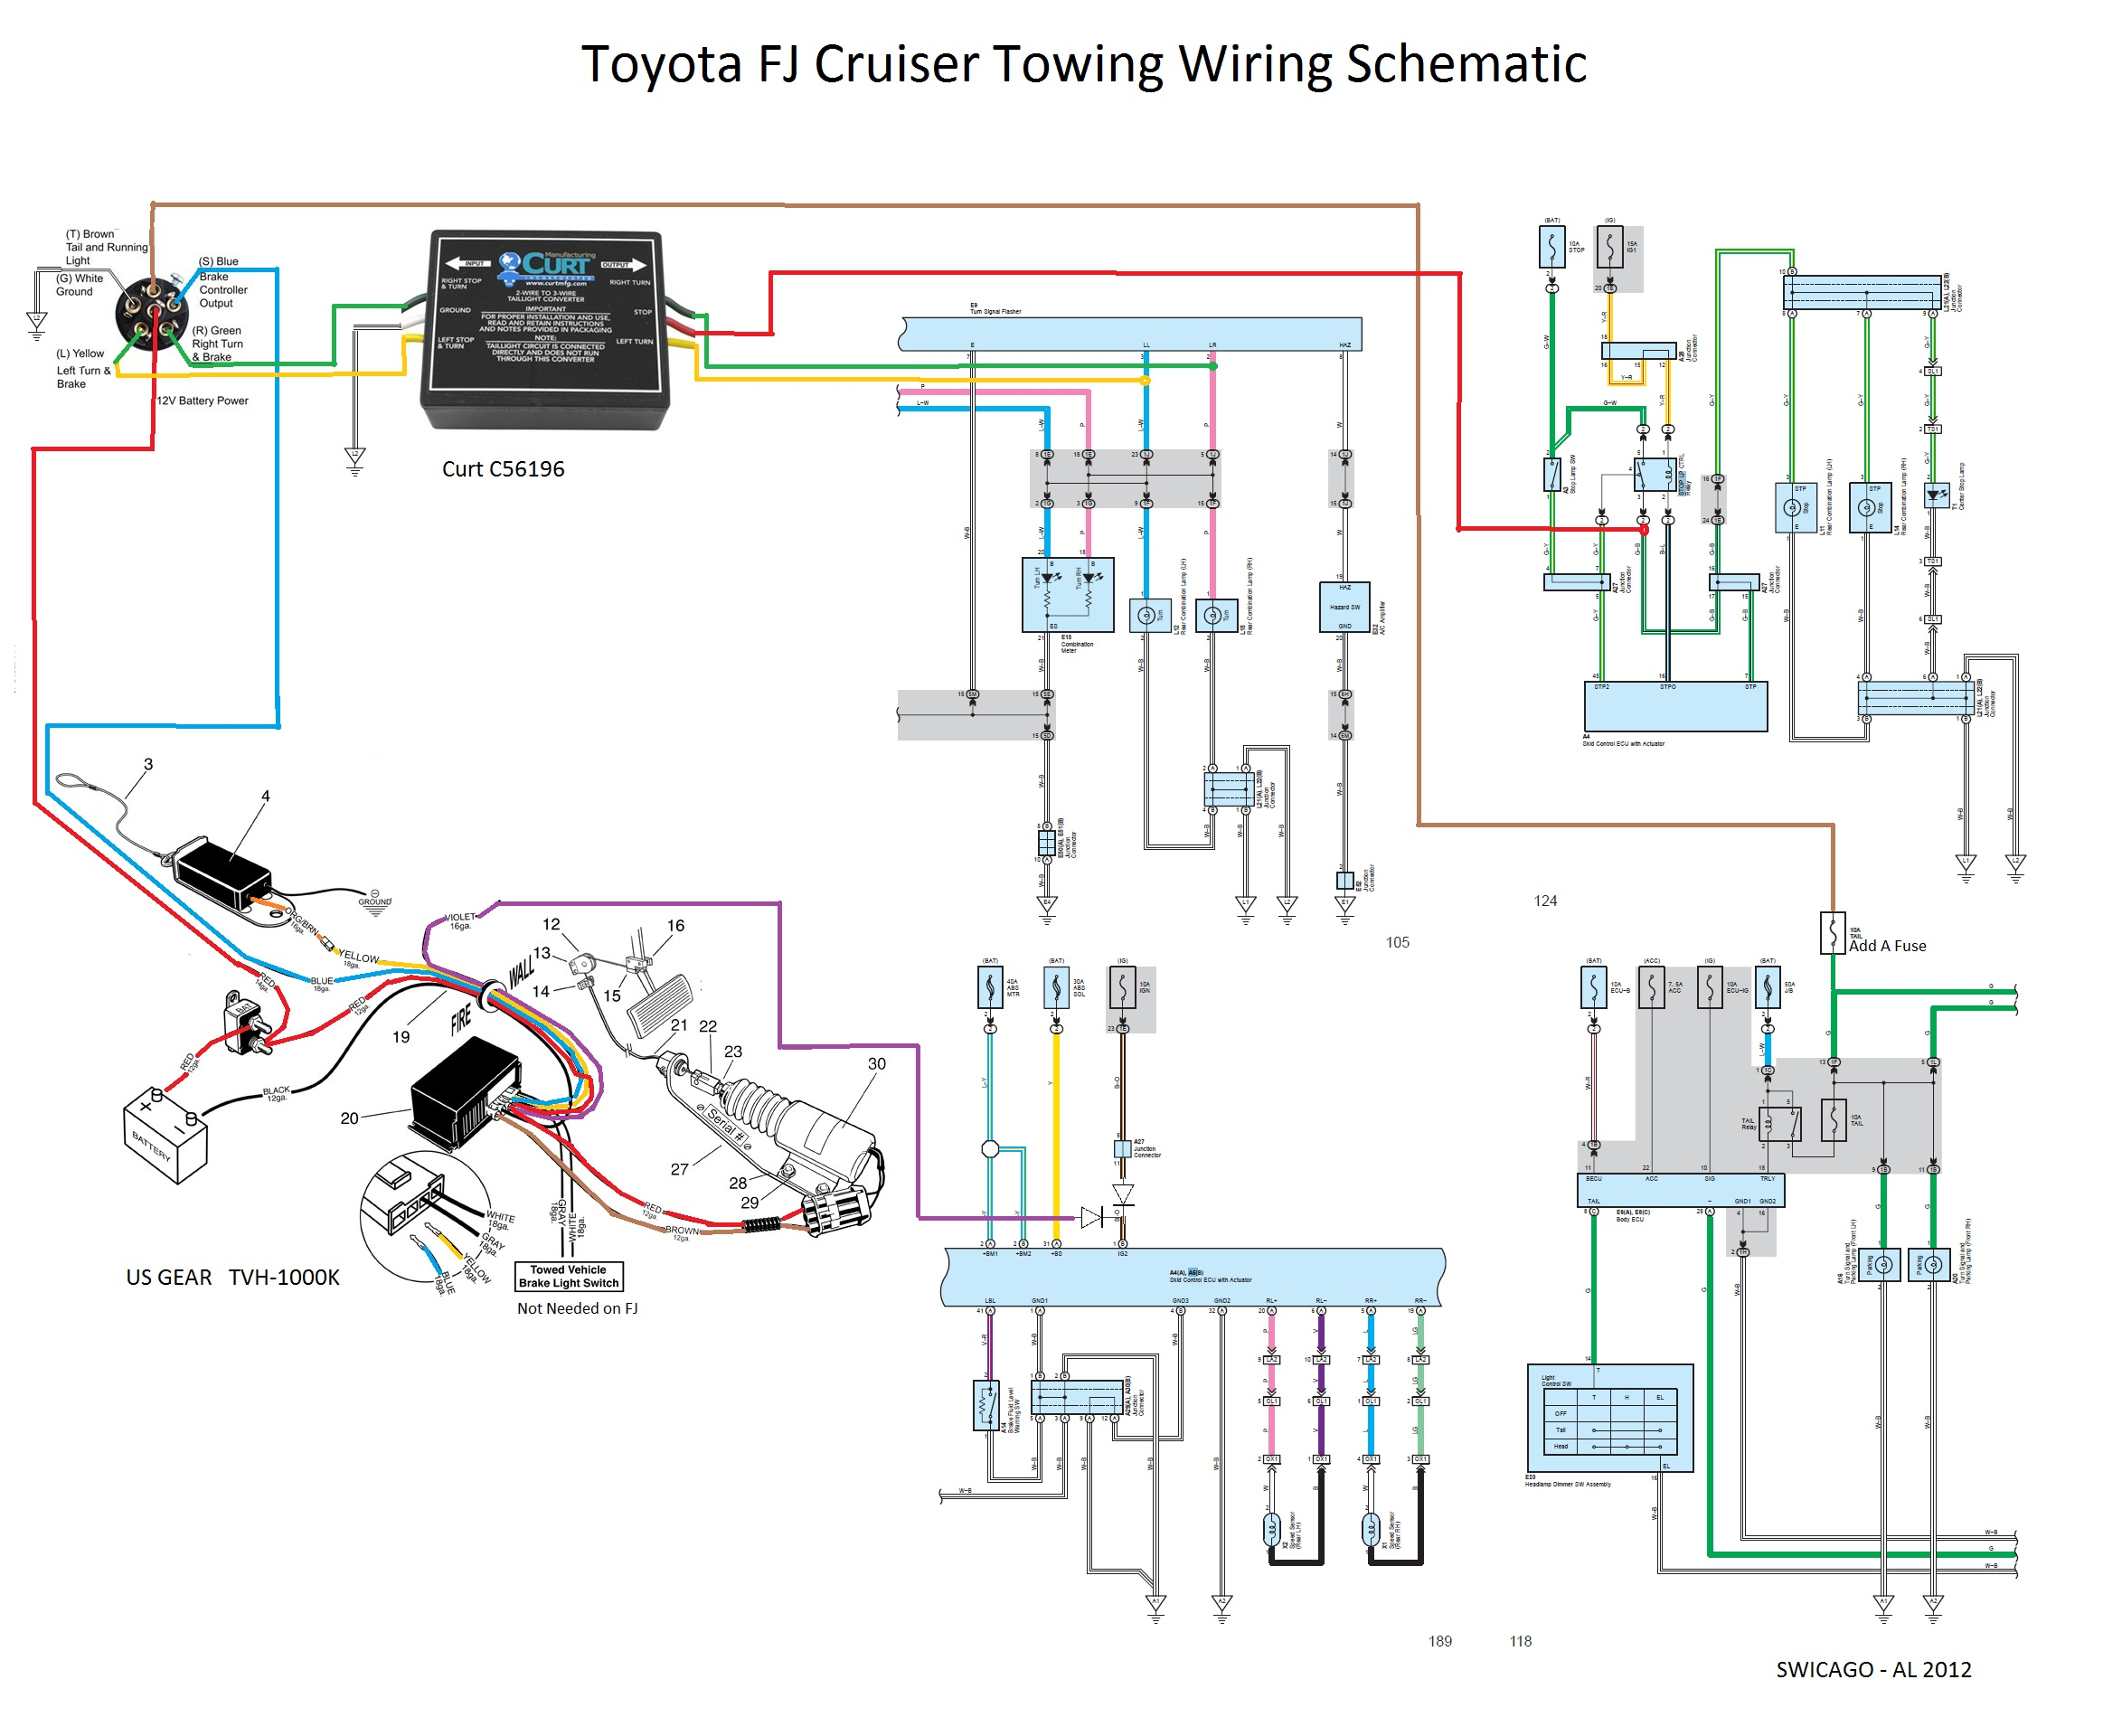 [SCHEMATICS_4FD]  05 Tundra Trailer Wiring Diagram Diagram Base Website Wiring Diagram -  VIRUSVENNDIAGRAM.SCARPEHOGAN--OUTLET.IT | 2007 Toyota Tundra Trailer Wiring Diagram Schematic |  | scarpehogan--outlet